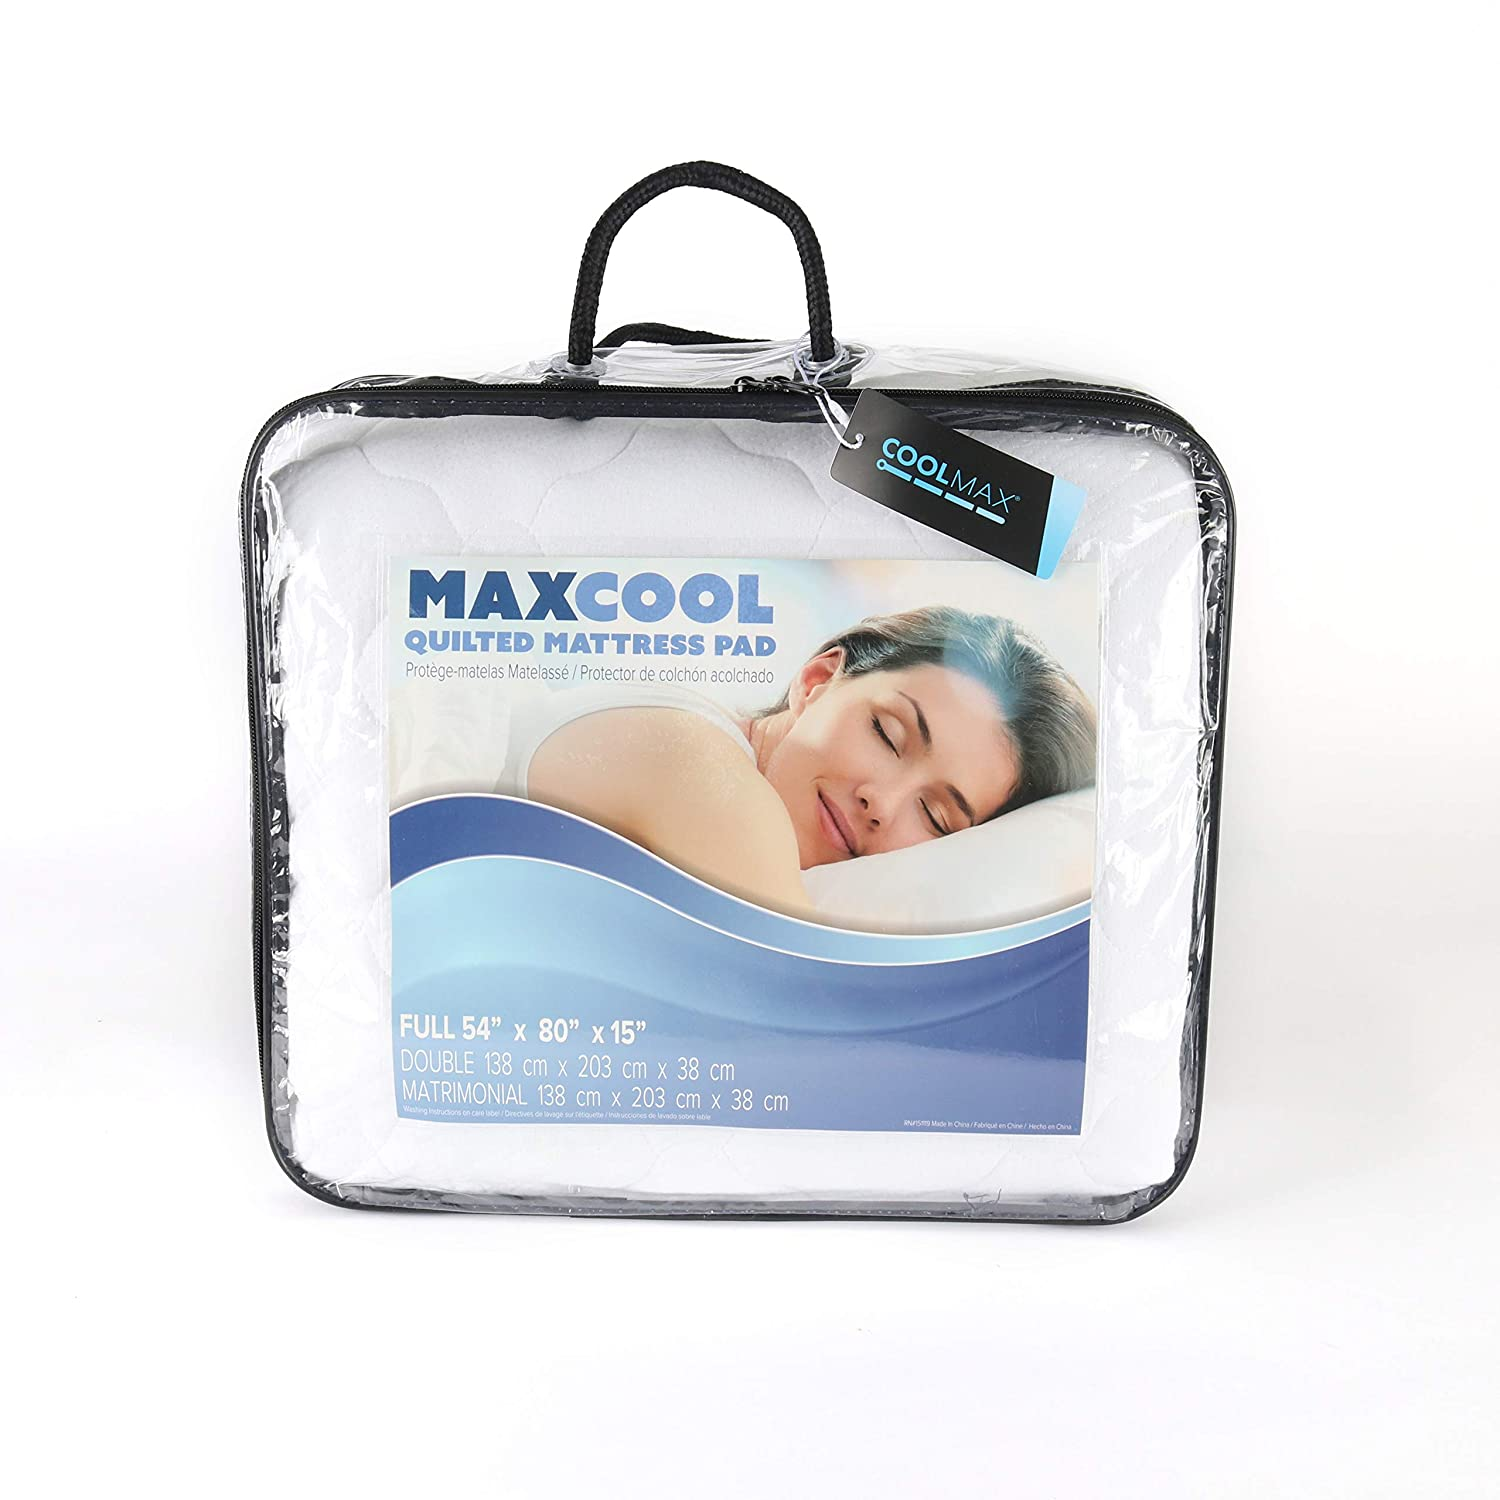 Amazon.com: Arkwright Quilted Mattress Pad   Coolmax Technology Fabric Keeps You Cool   Hypoallergenic, Breathable, Water Resistant, Noiseless   Soft and ...